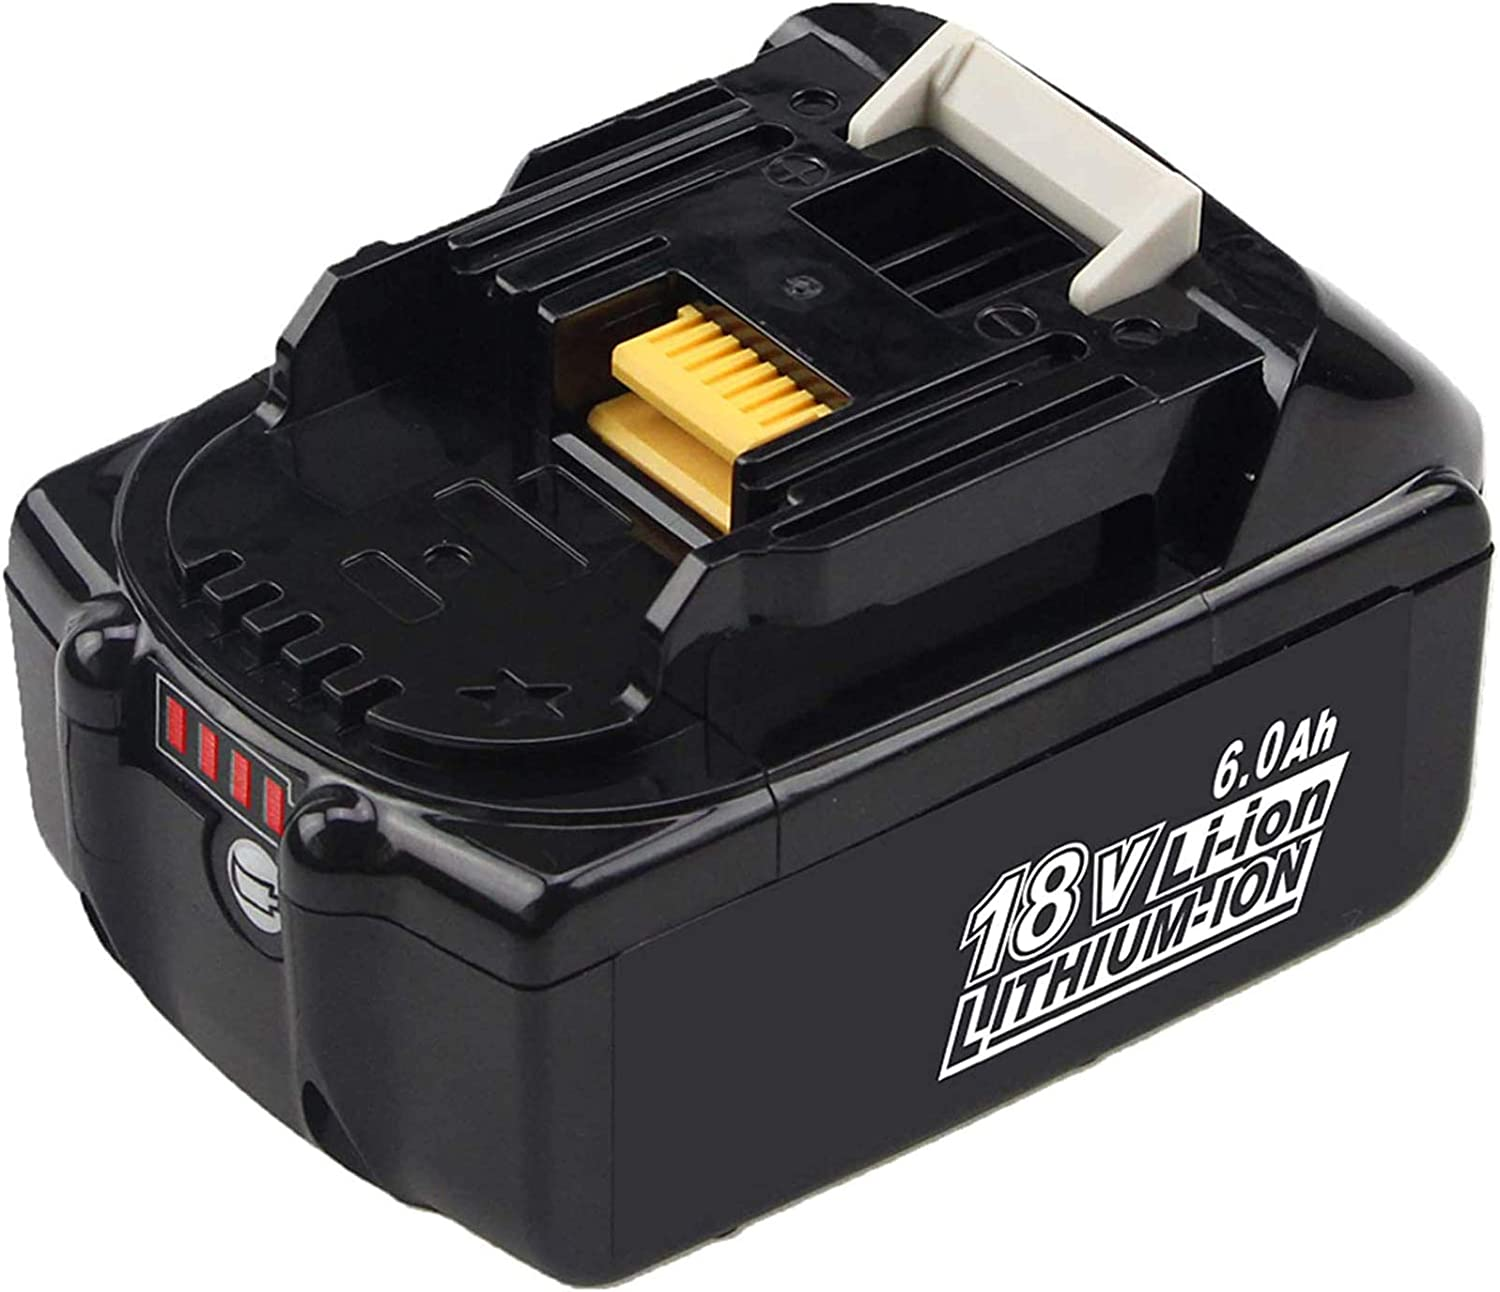 6.0Ah BL1860B 100% quality warranty Replacement Battery Compatible Ranking TOP1 Makita with Bat 18V